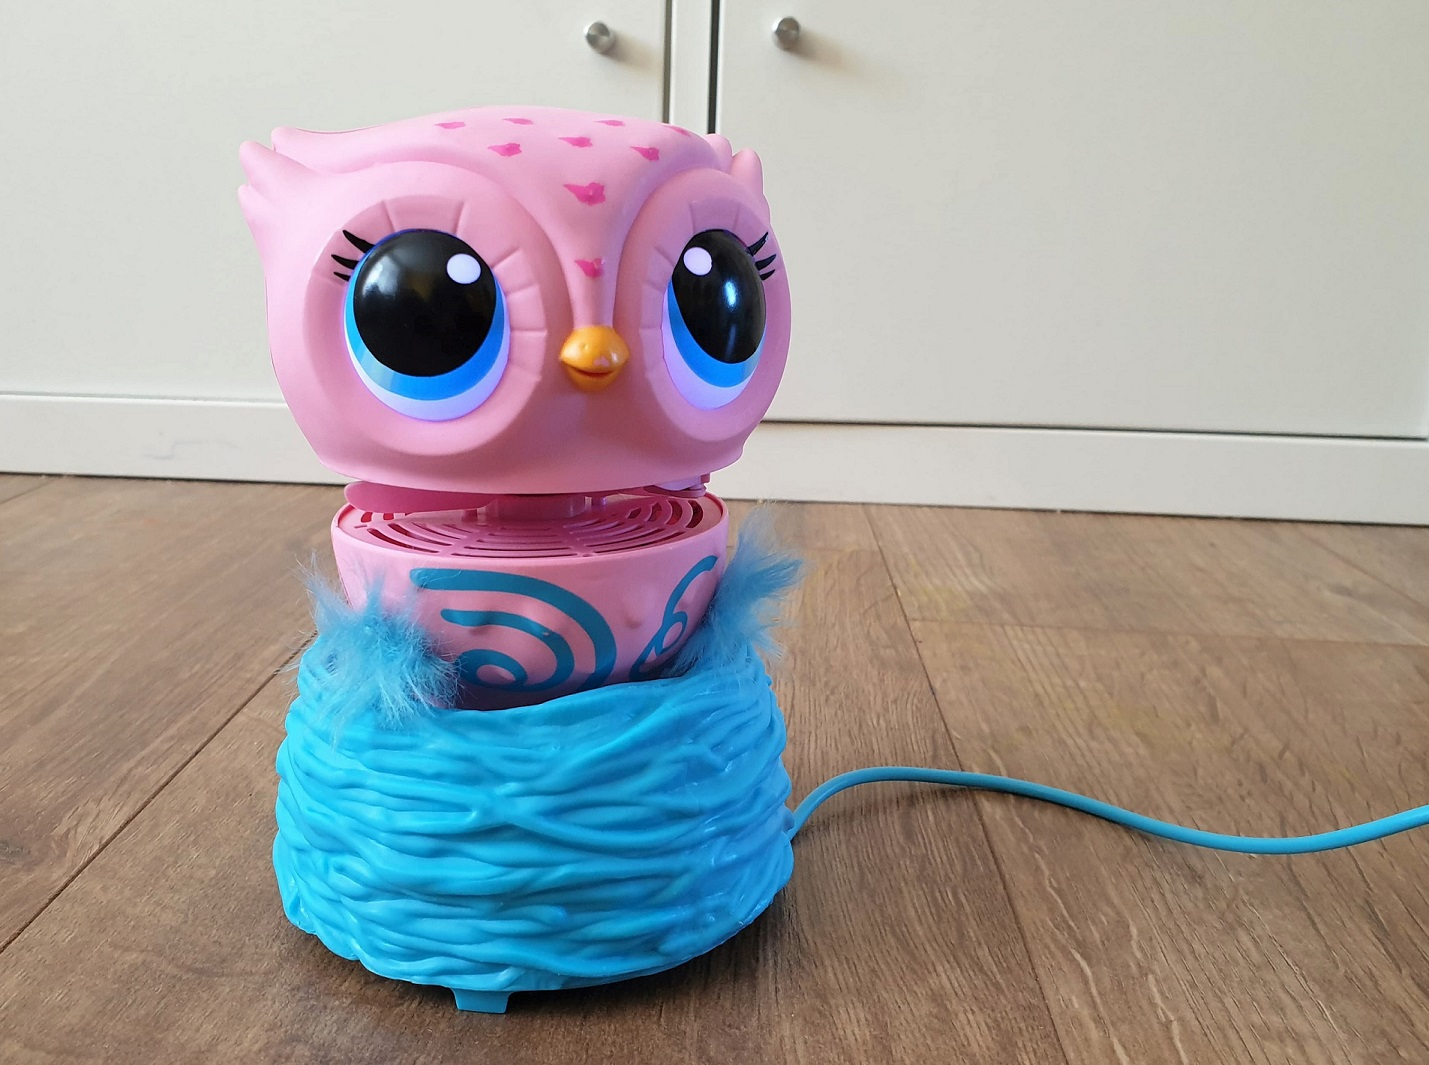 Owleez interactive flying owl toy